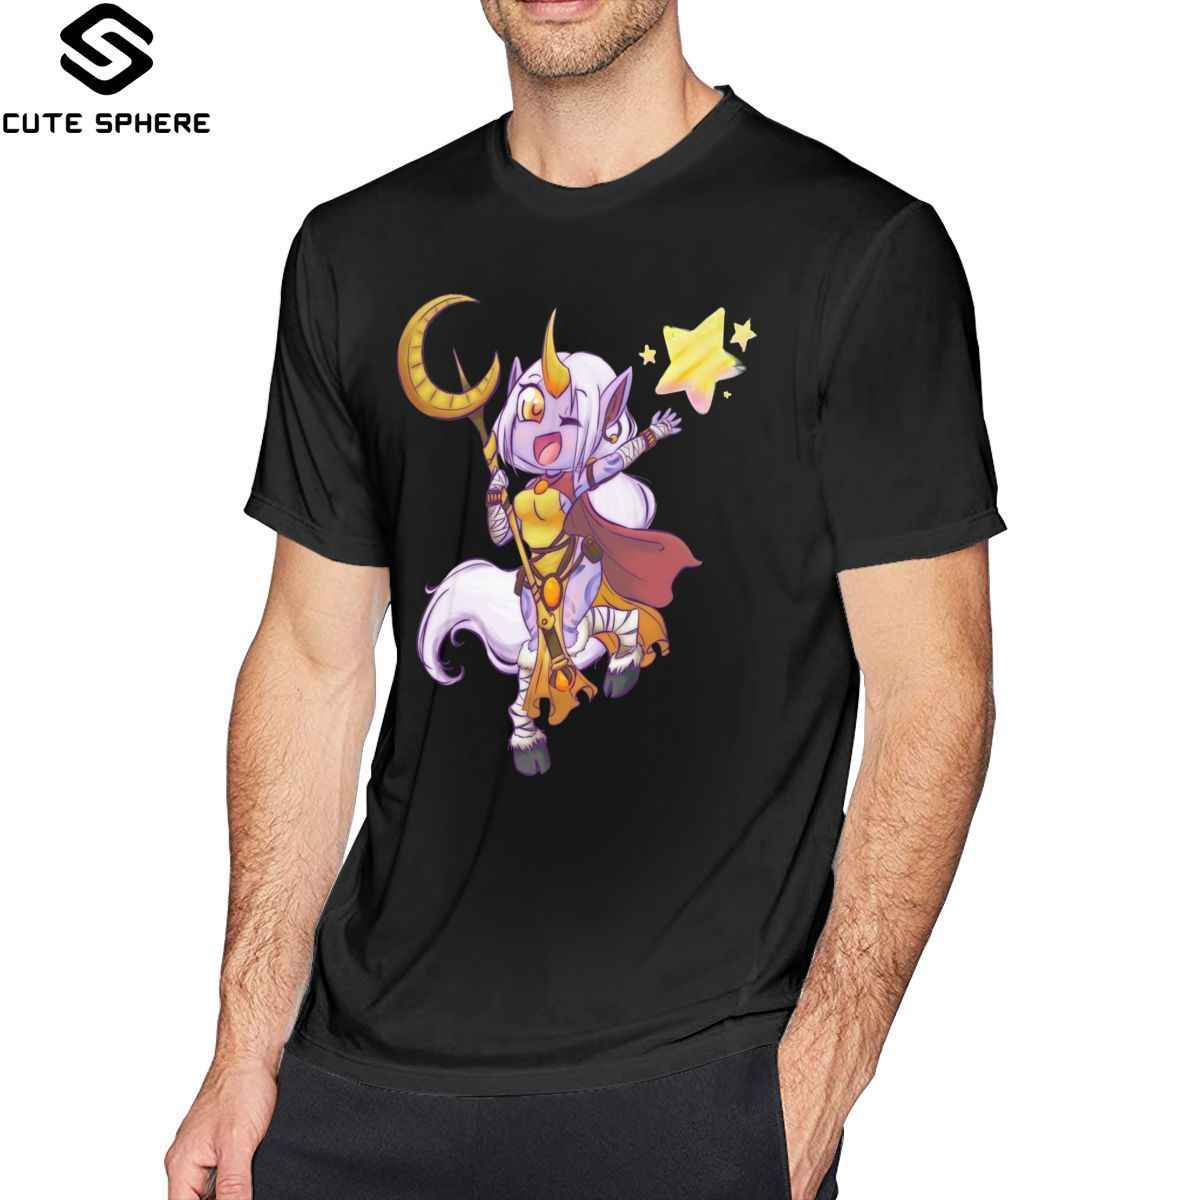 League Of Legends Soraka T Hemd Chibi Soraka T-Shirt Kurzarm Graphic Tee Shirt XXX Lustige Mode T-shirt